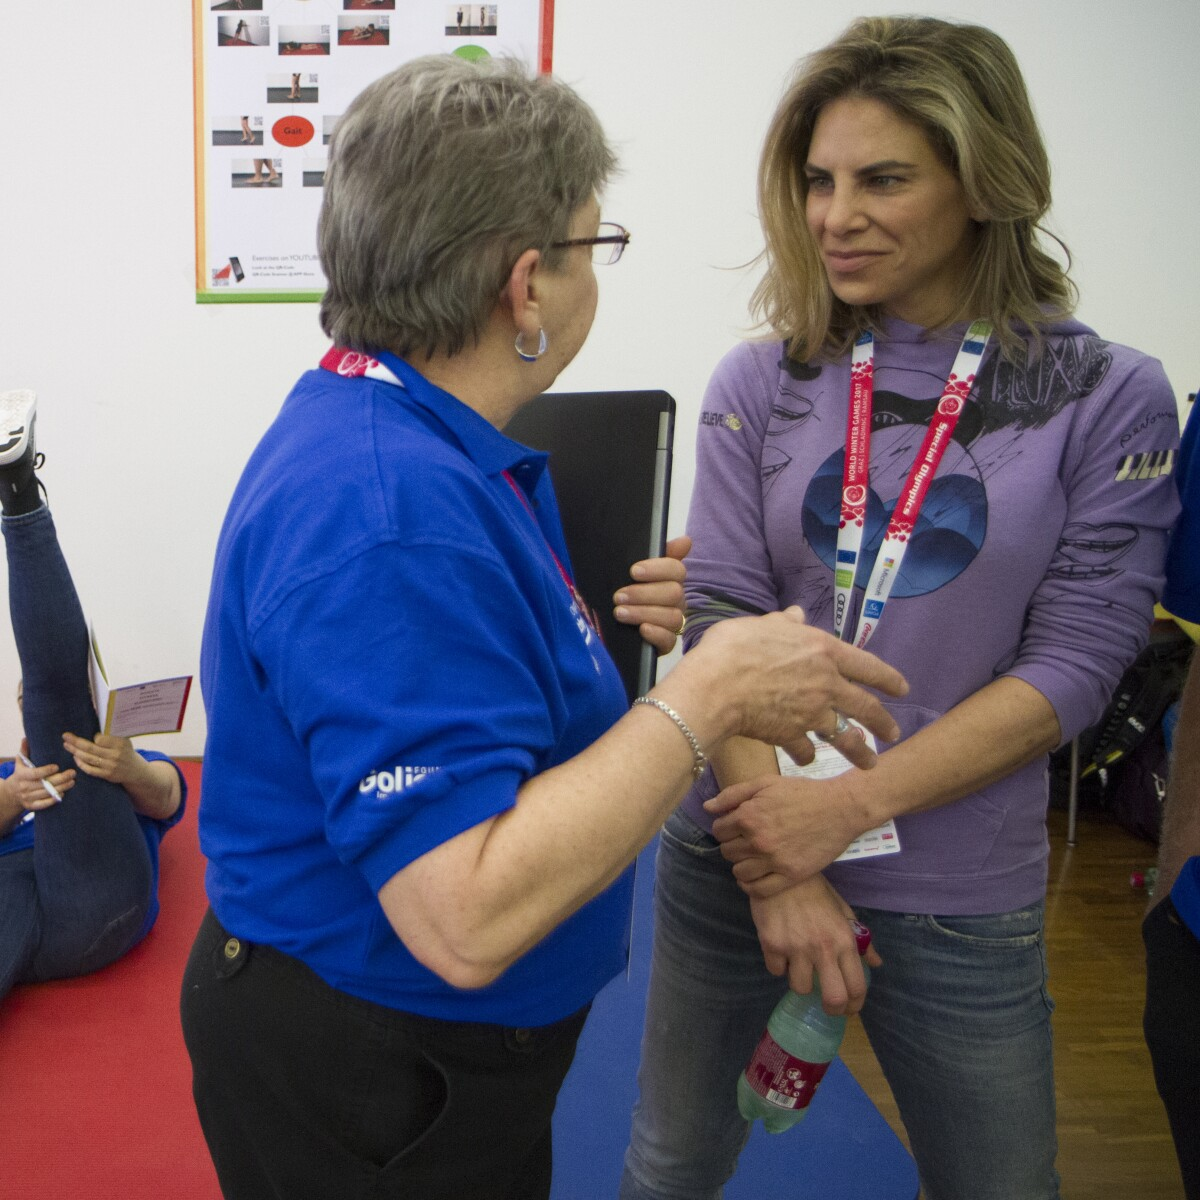 Professional Trainer Jillian Michaels Tours a FUNfitness Healthy Athletes Facility at the Special Olympics World Winter Games in Austria, 2017